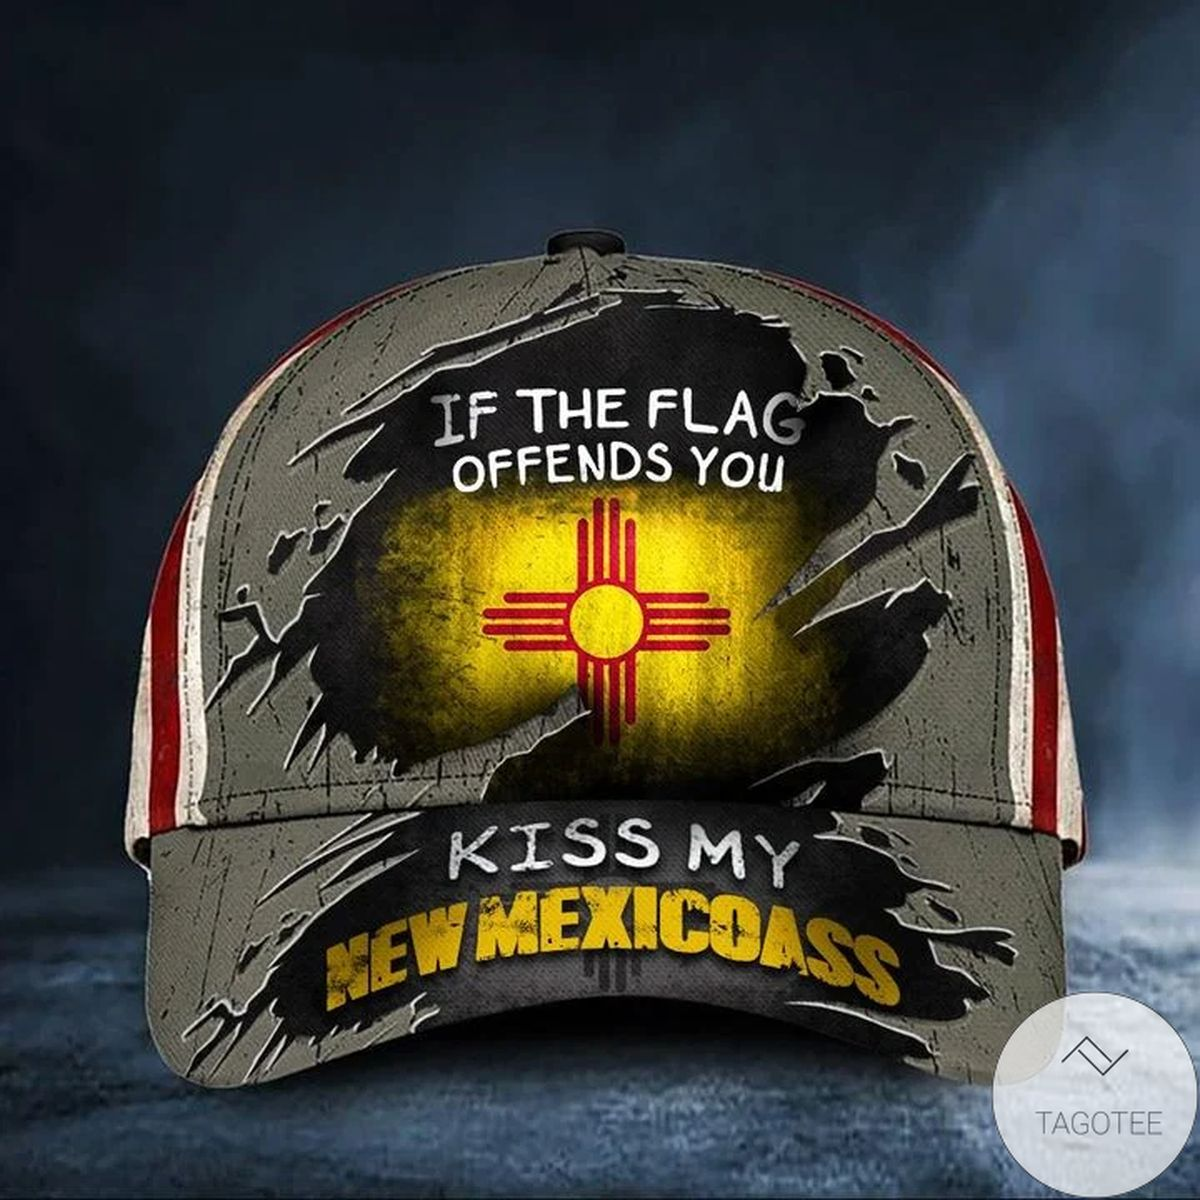 Very Good Quality If The Flag Offends You Kiss My New Mexicoass Cap Vintage USA Flag Hat For Men Presents